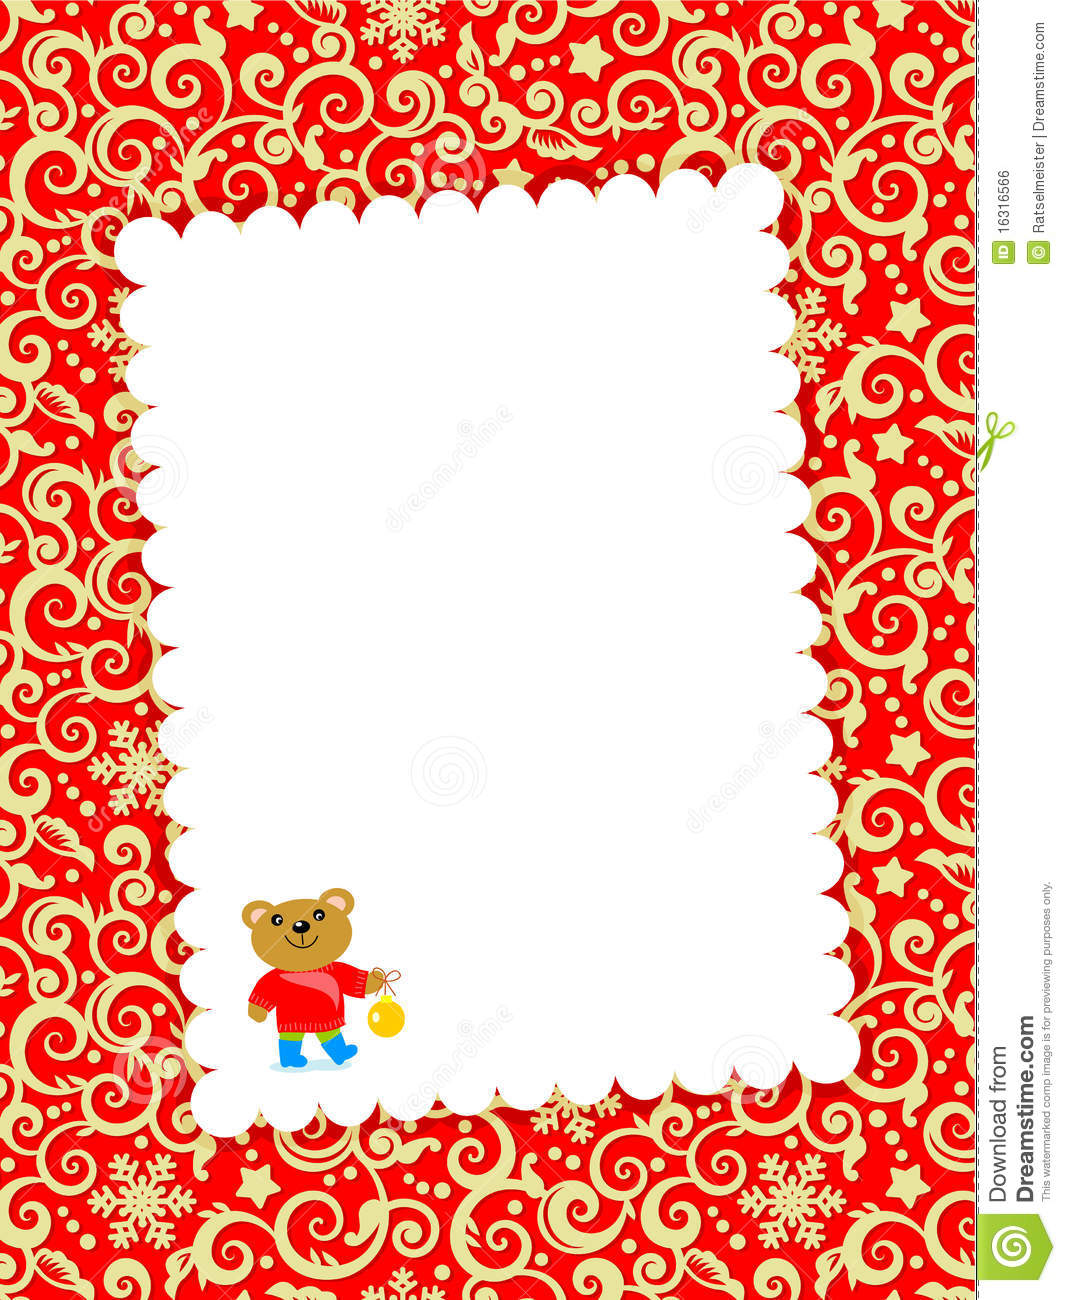 christmas or new year greeting card or invitation template with blank letter little cute bear decorative red and gold swirly background